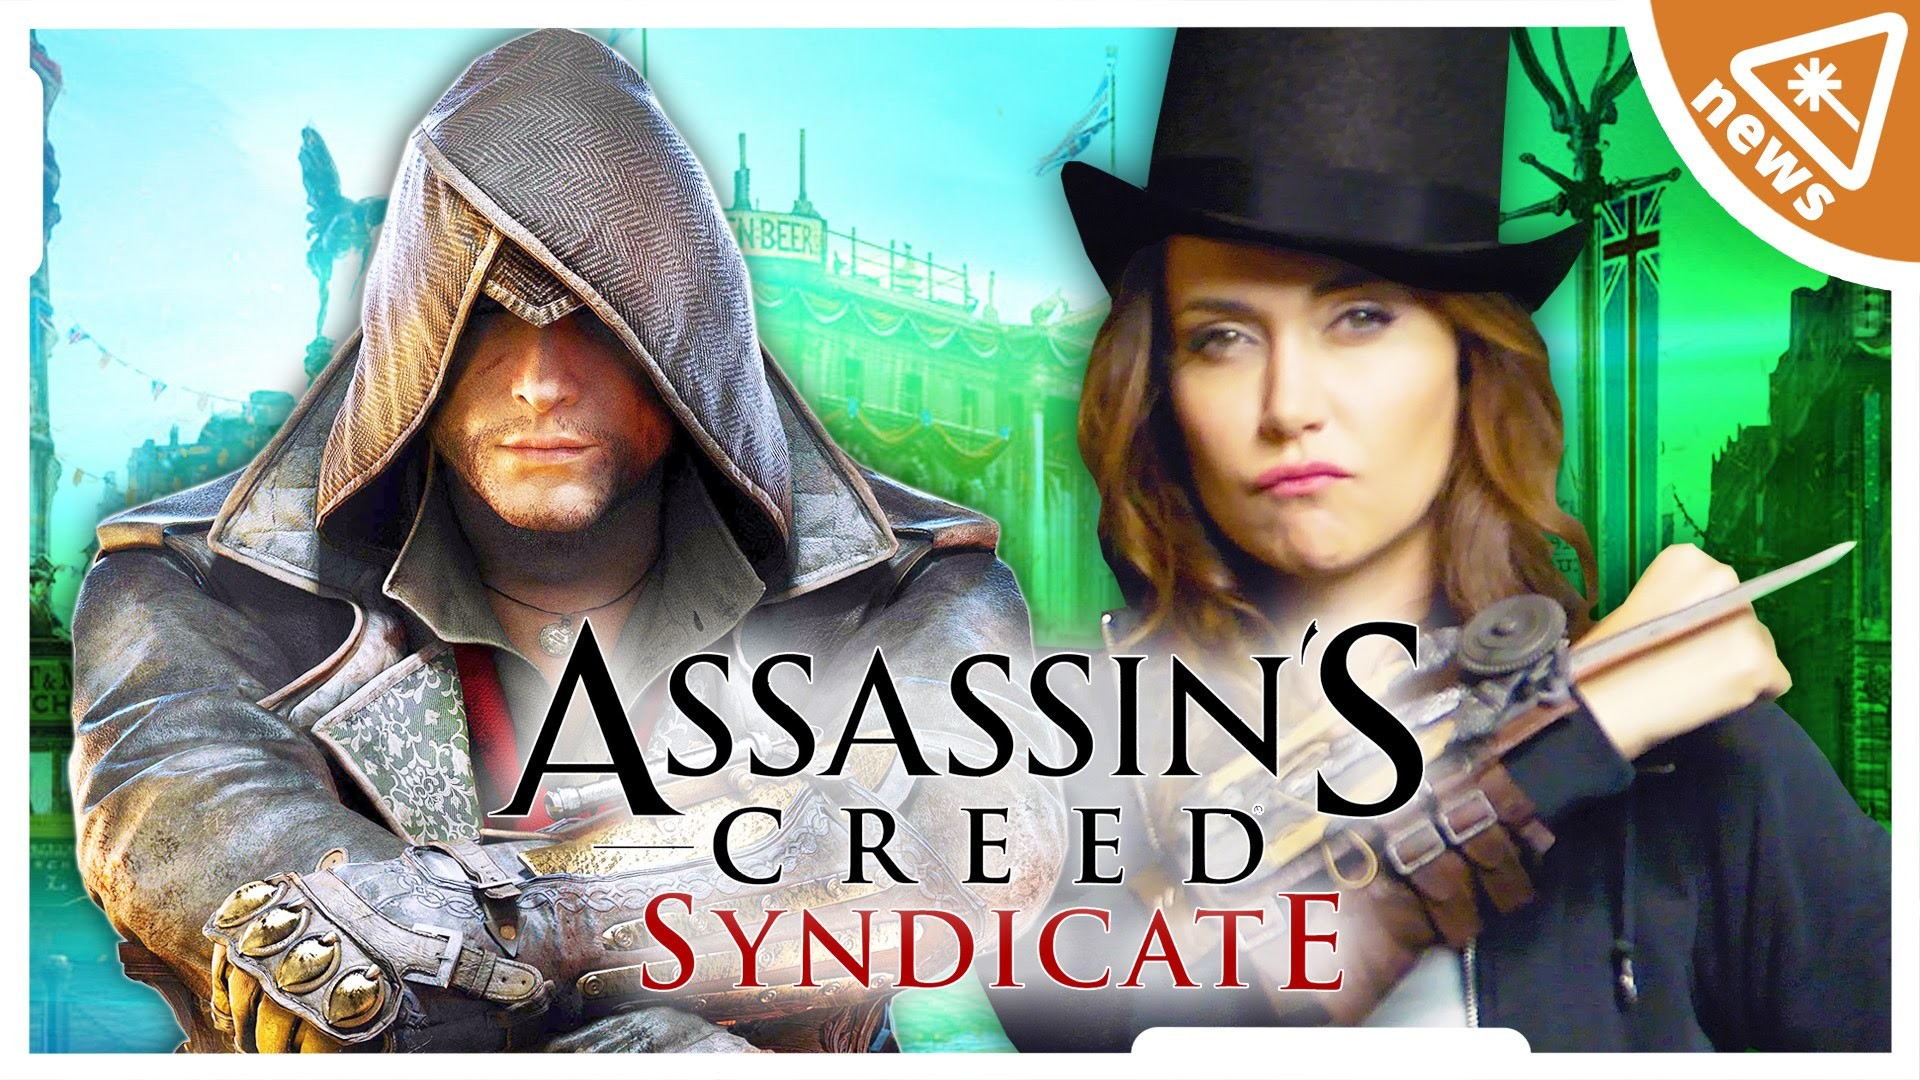 Res: 1920x1080, First Look at ASSASSIN'S CREED SYNDICATE (Nerdist News w/ Jessica Chobot) -  YouTube